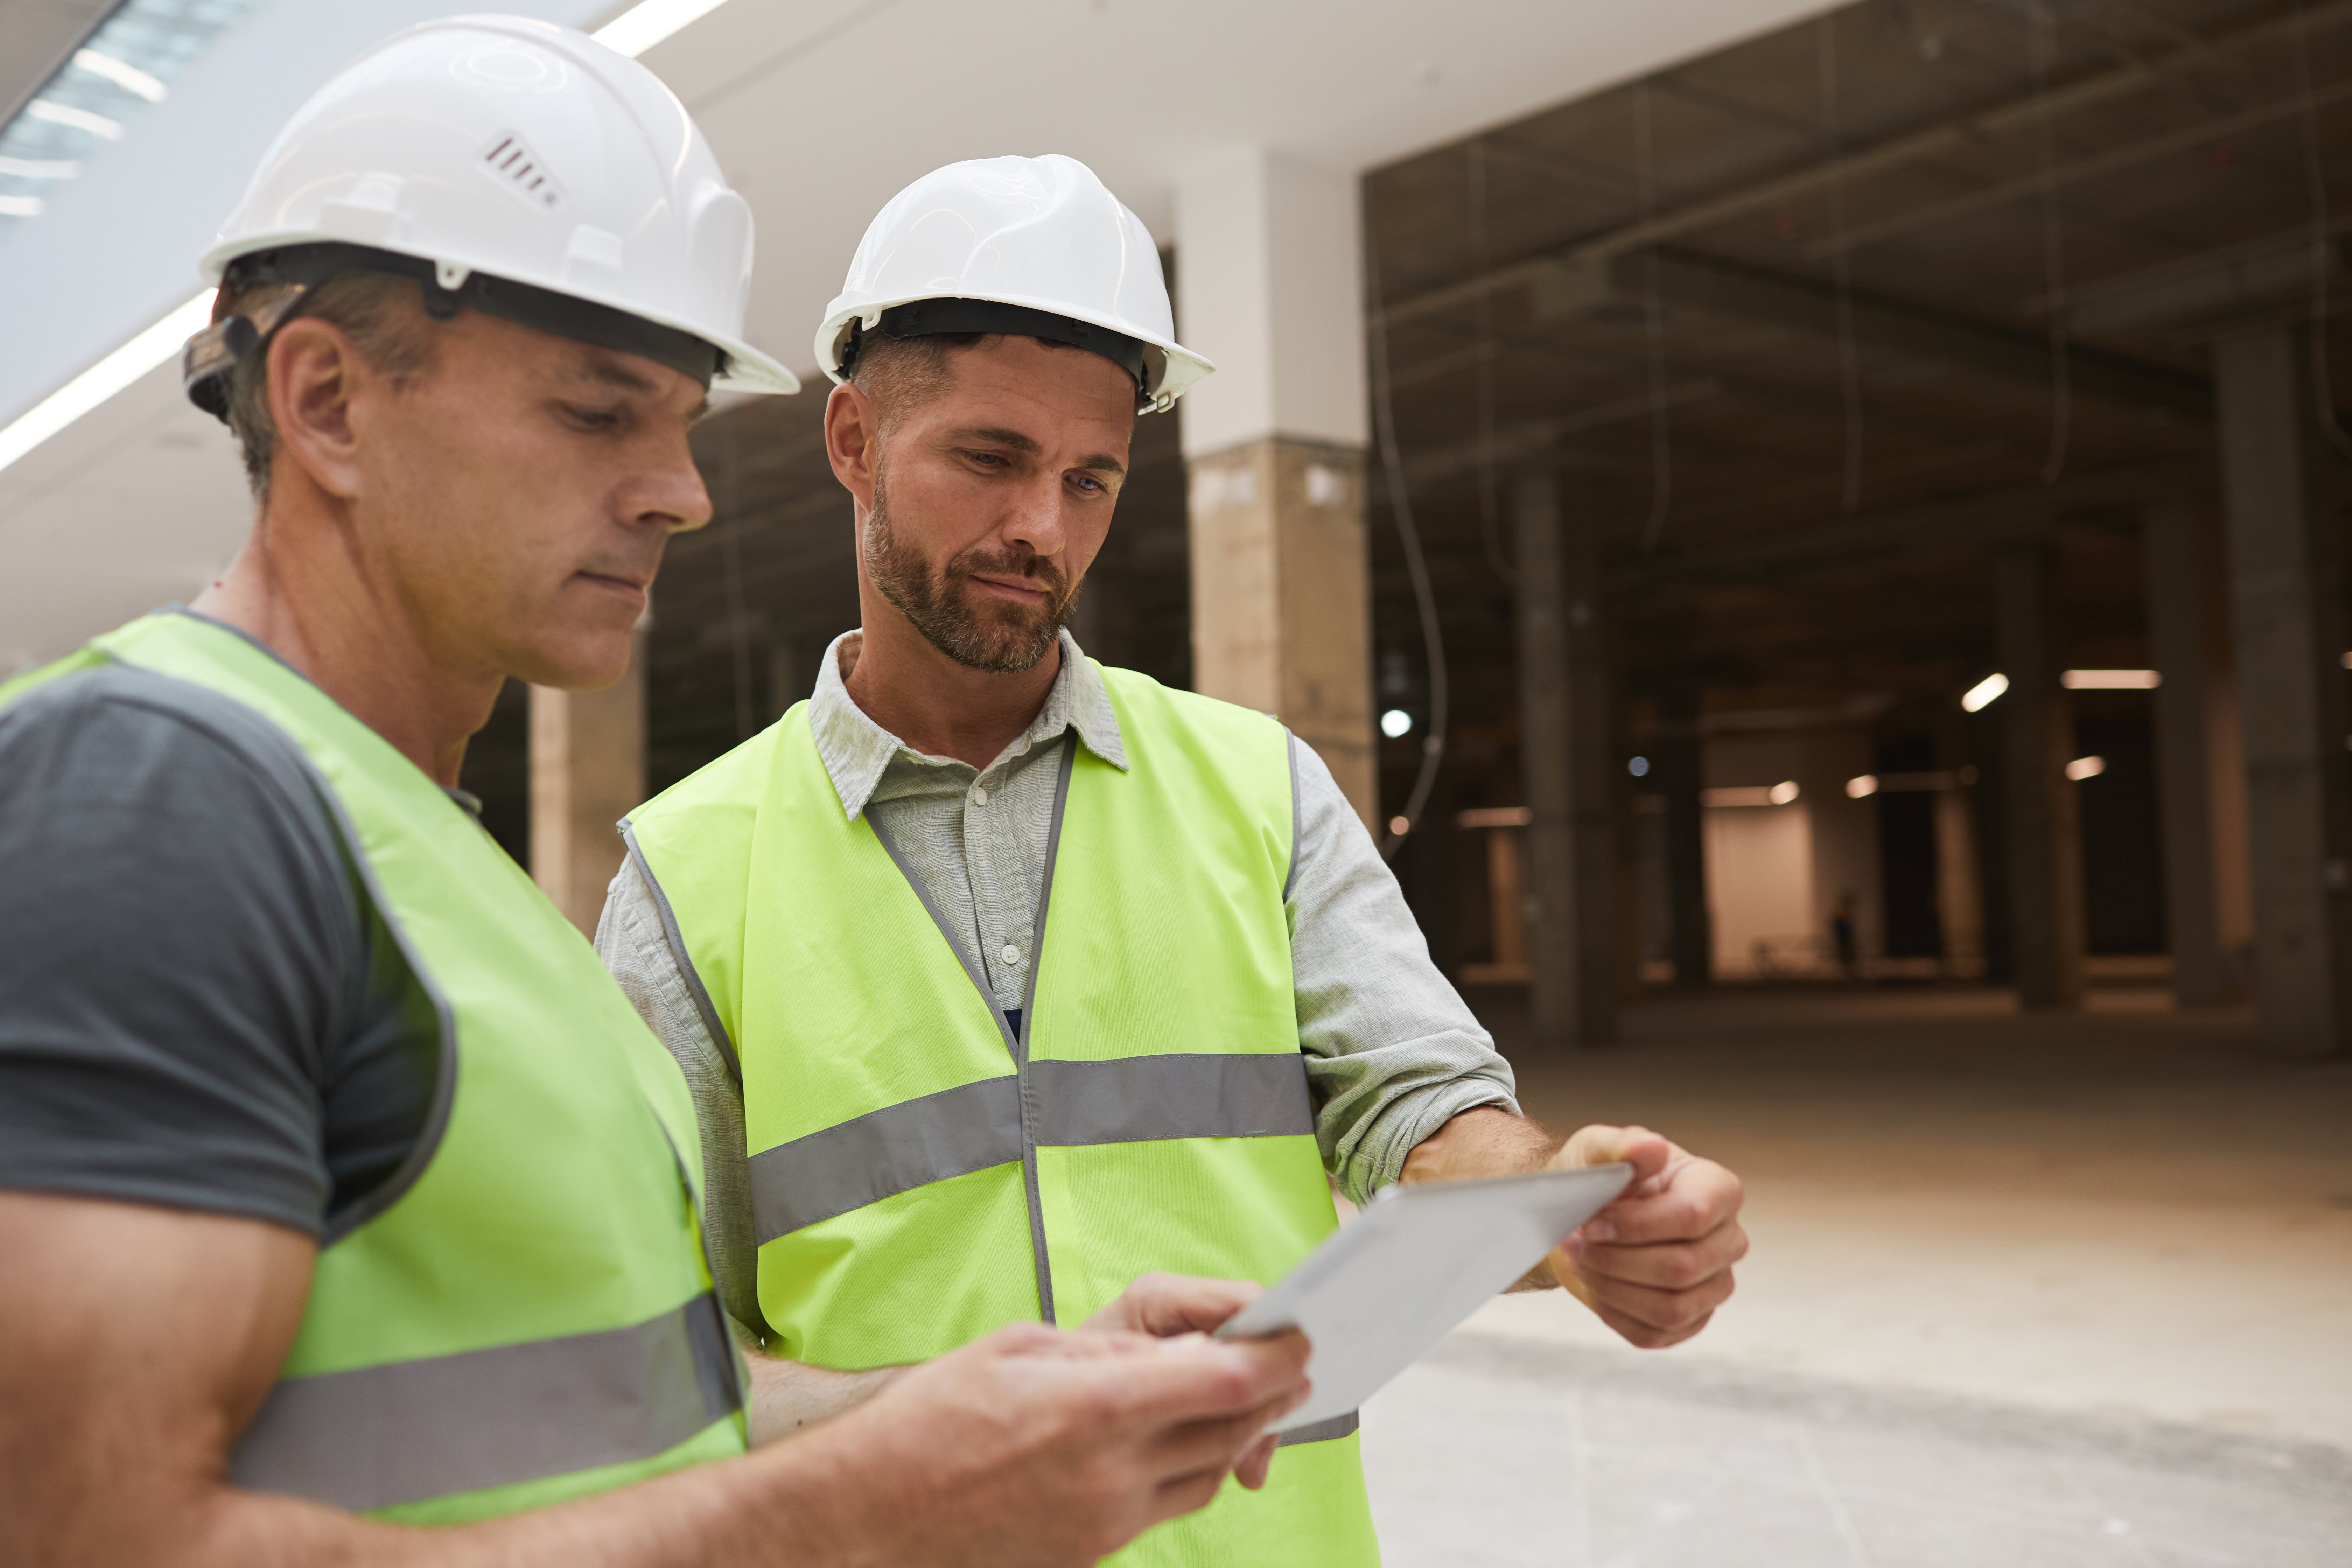 two-professional-construction-workers-on-site-3Y3TKZX